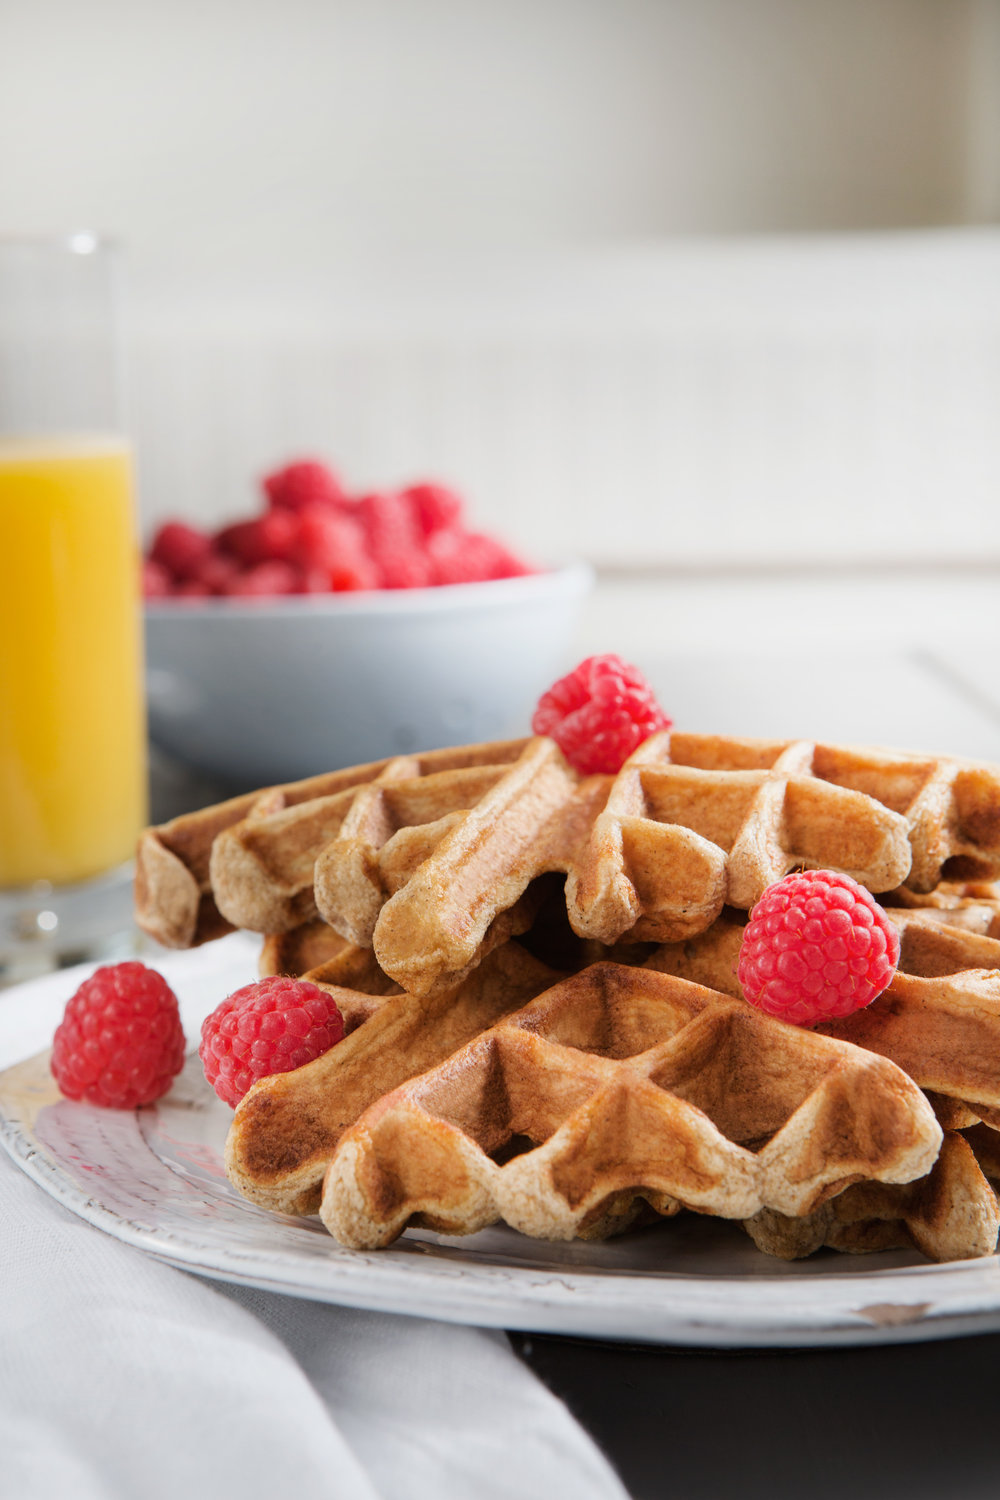 High-Protein Belgian Waffles, Kodiak Cakes, High Protein Waffles, Gluten Free Waffles, High Protein Breakfast, Easy Healthy Breakfast, Healthy Frozen Breakfast, Healthy Frozen Waffles